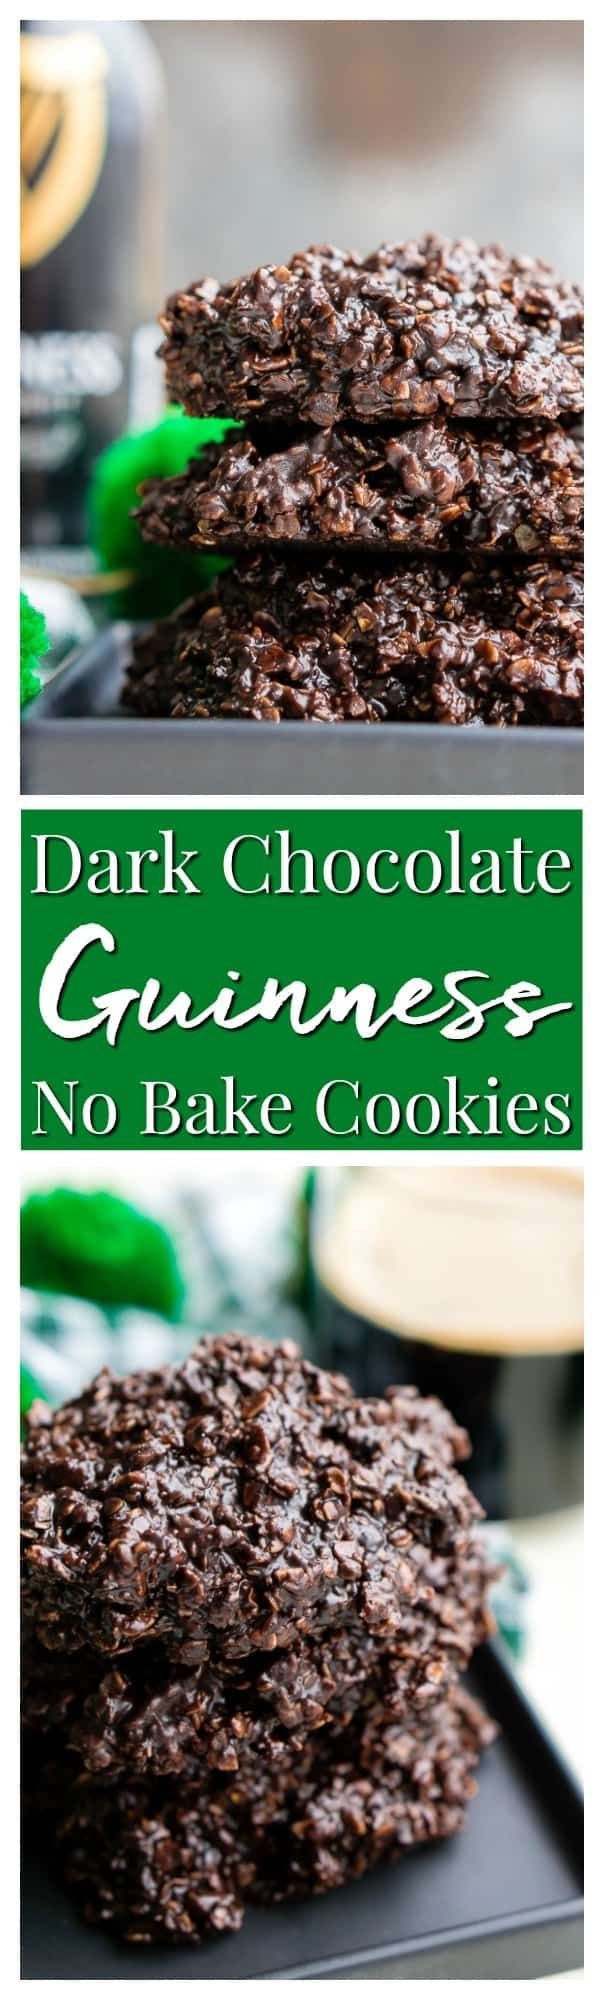 ... on Pinterest | Mint chocolate, Mint brownies and Baileys irish cream